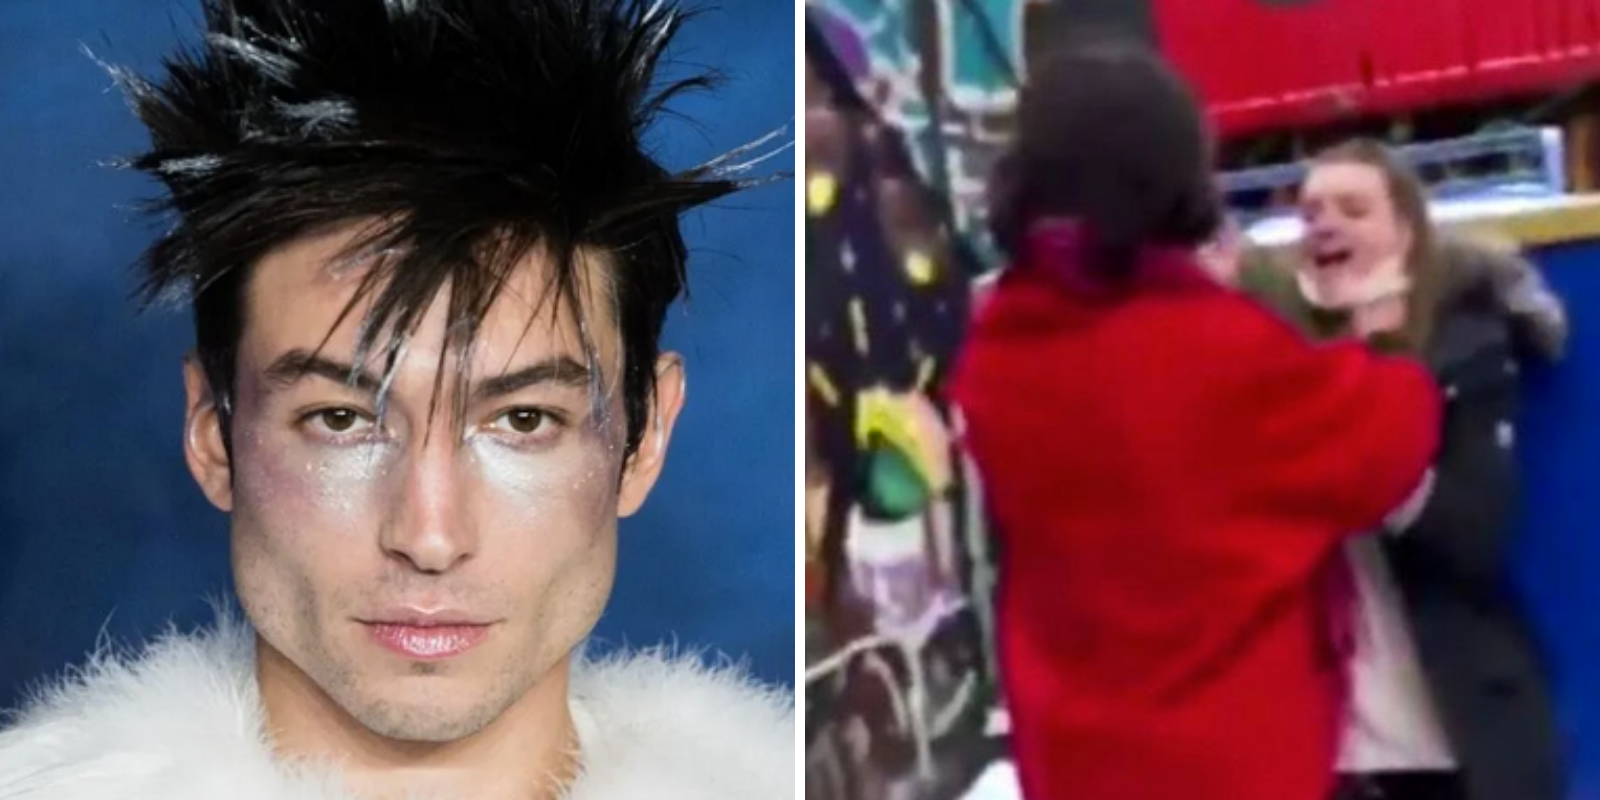 WATCH: Nonbinary actor Ezra Miller assaults woman outside of a pub